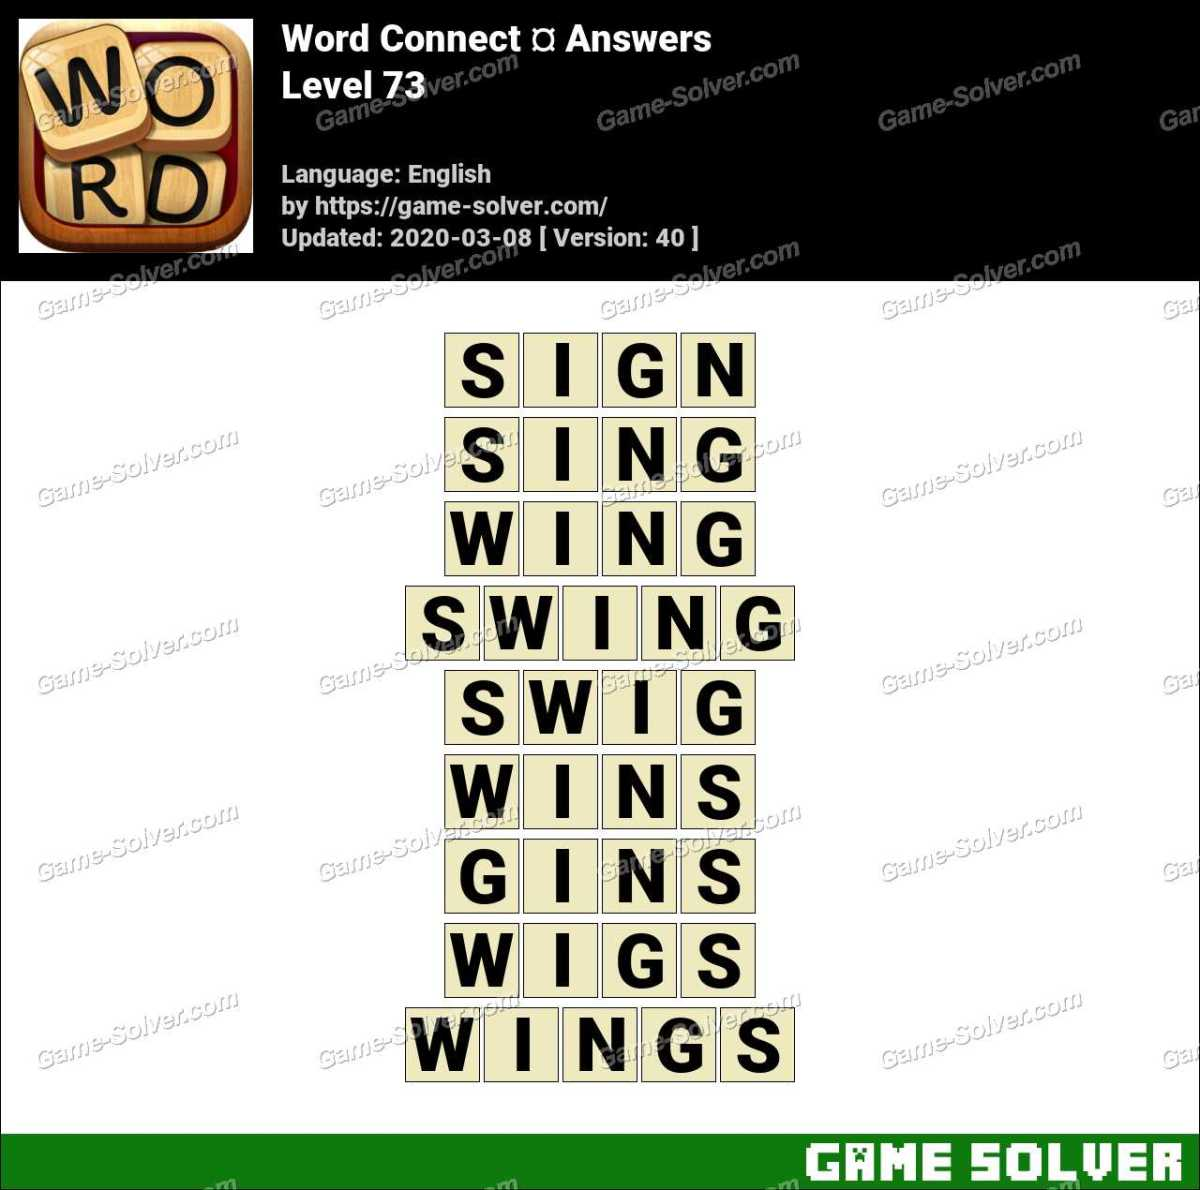 Word Connect Level 73 Answers